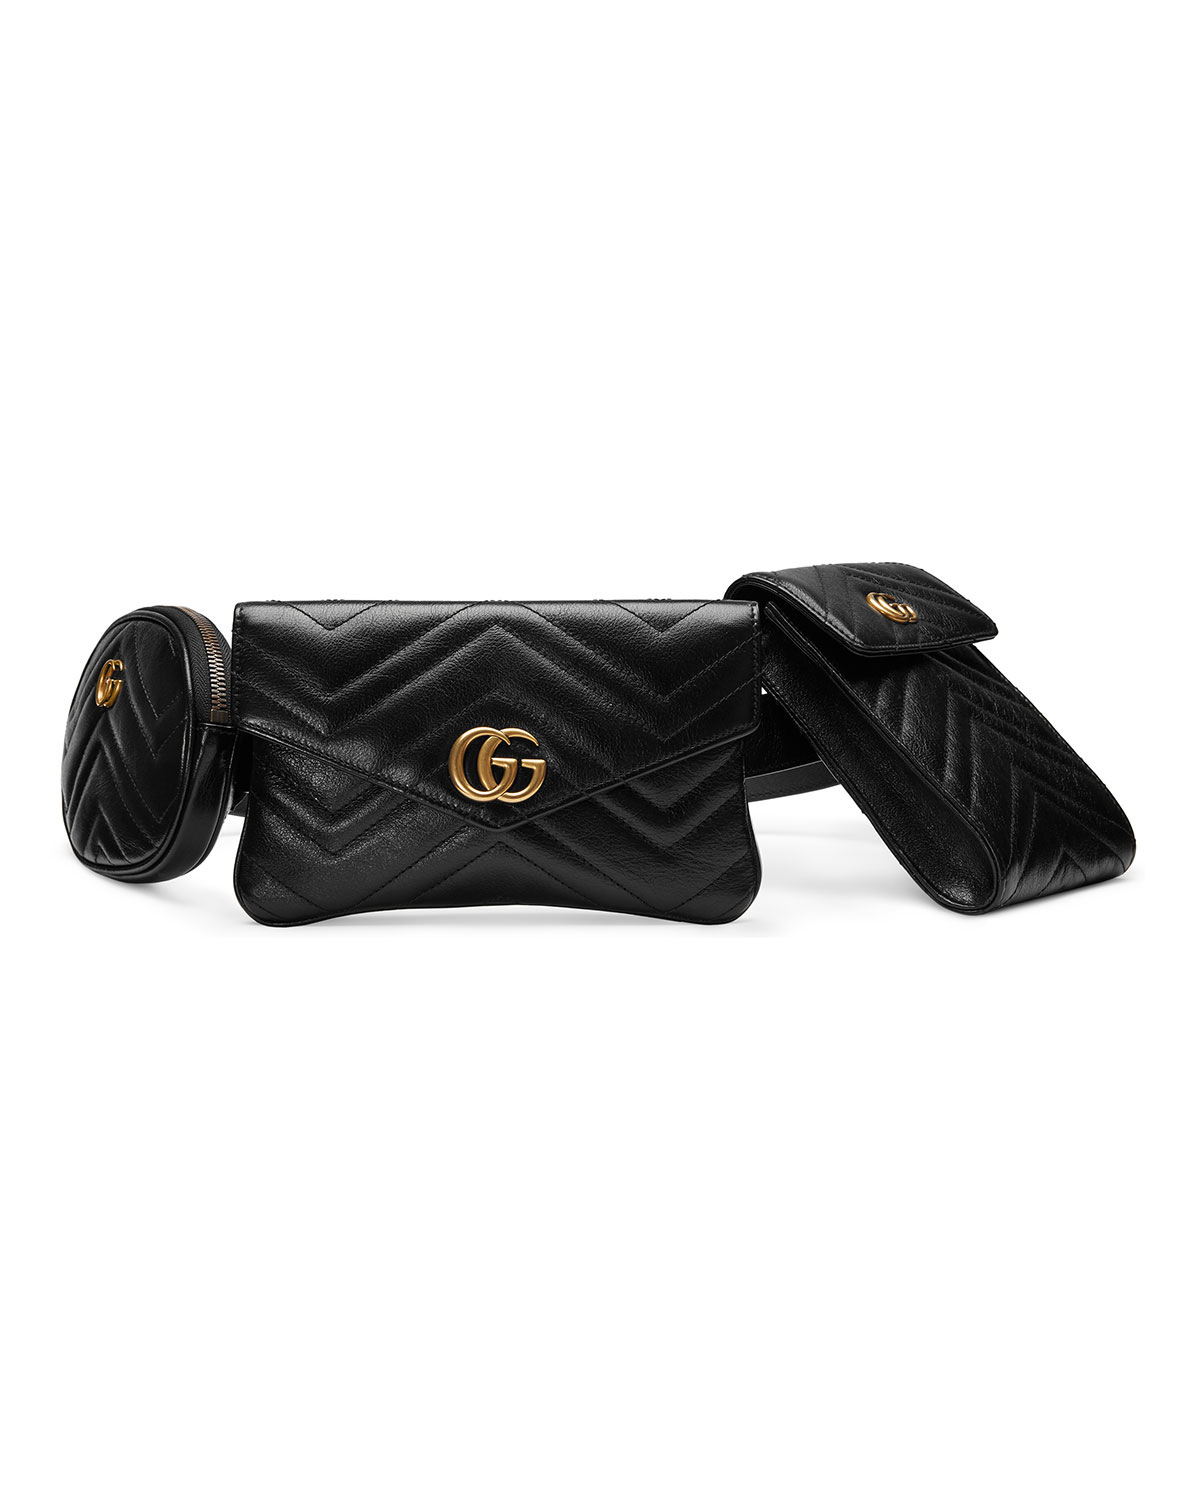 GG MARMONT 2.0 MATELASSE TRIPLE POUCH LEATHER BELT BAG - BLACK